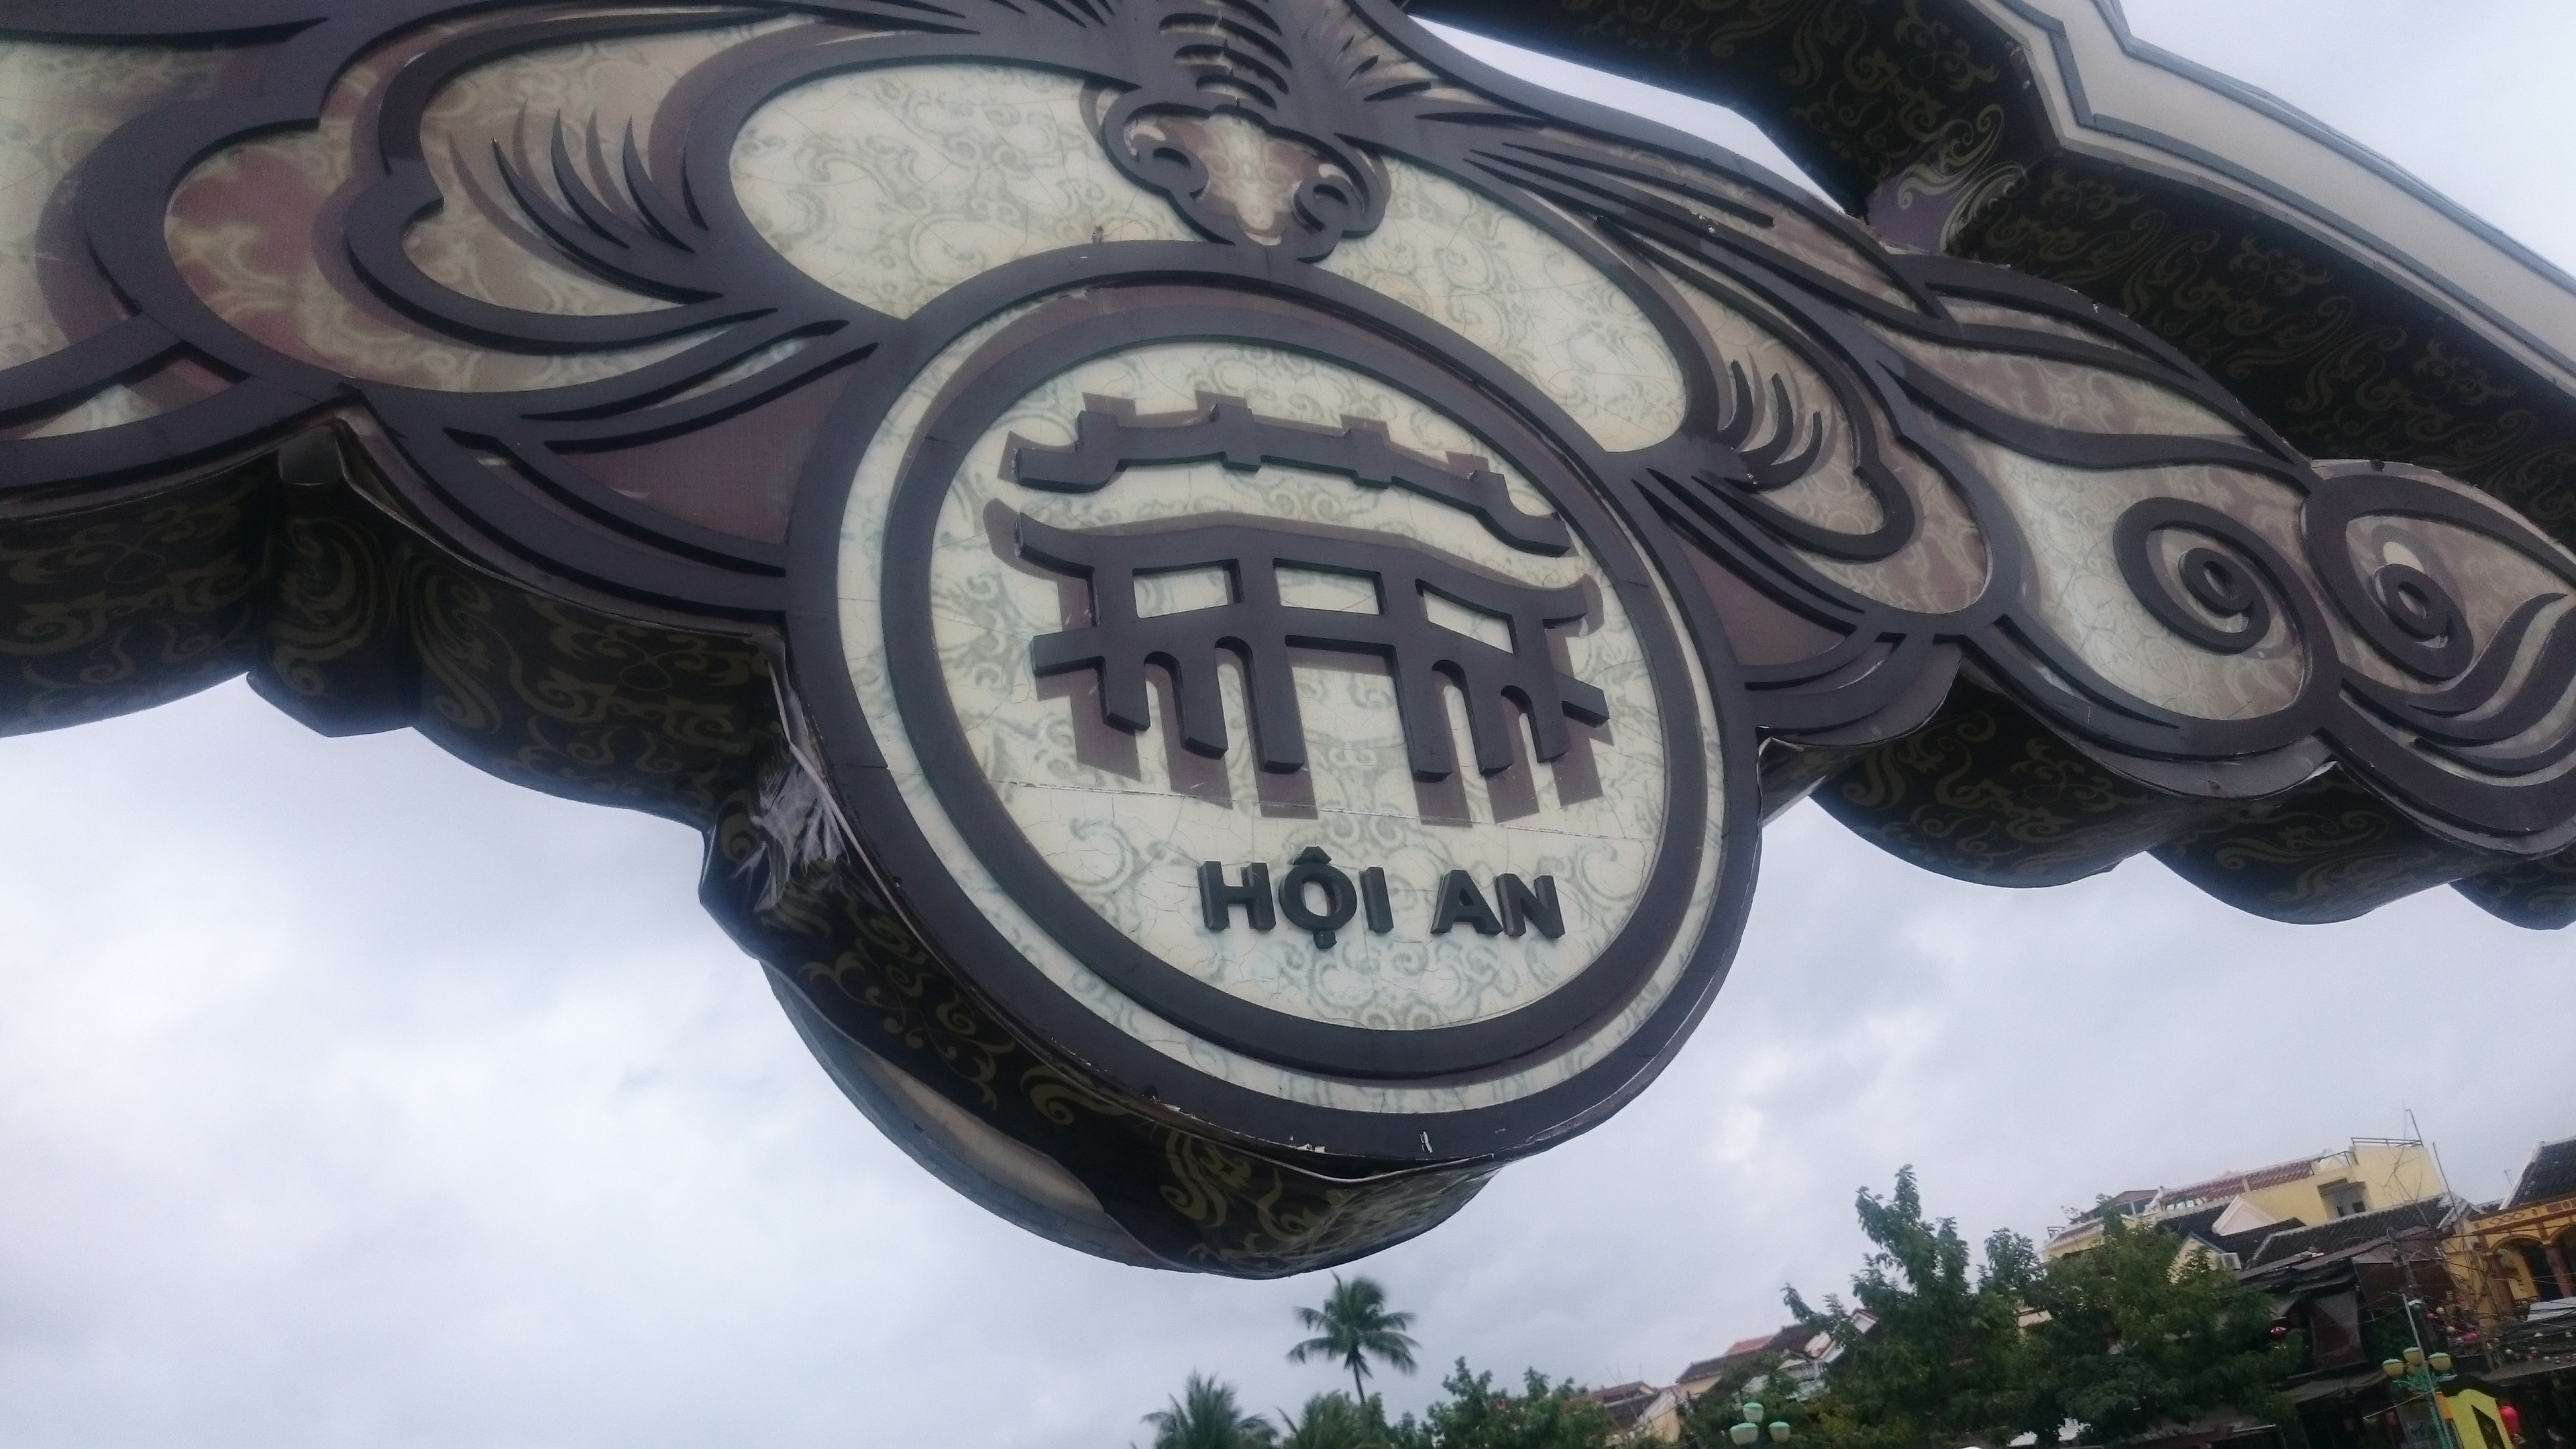 How I fell in love with HOI AN